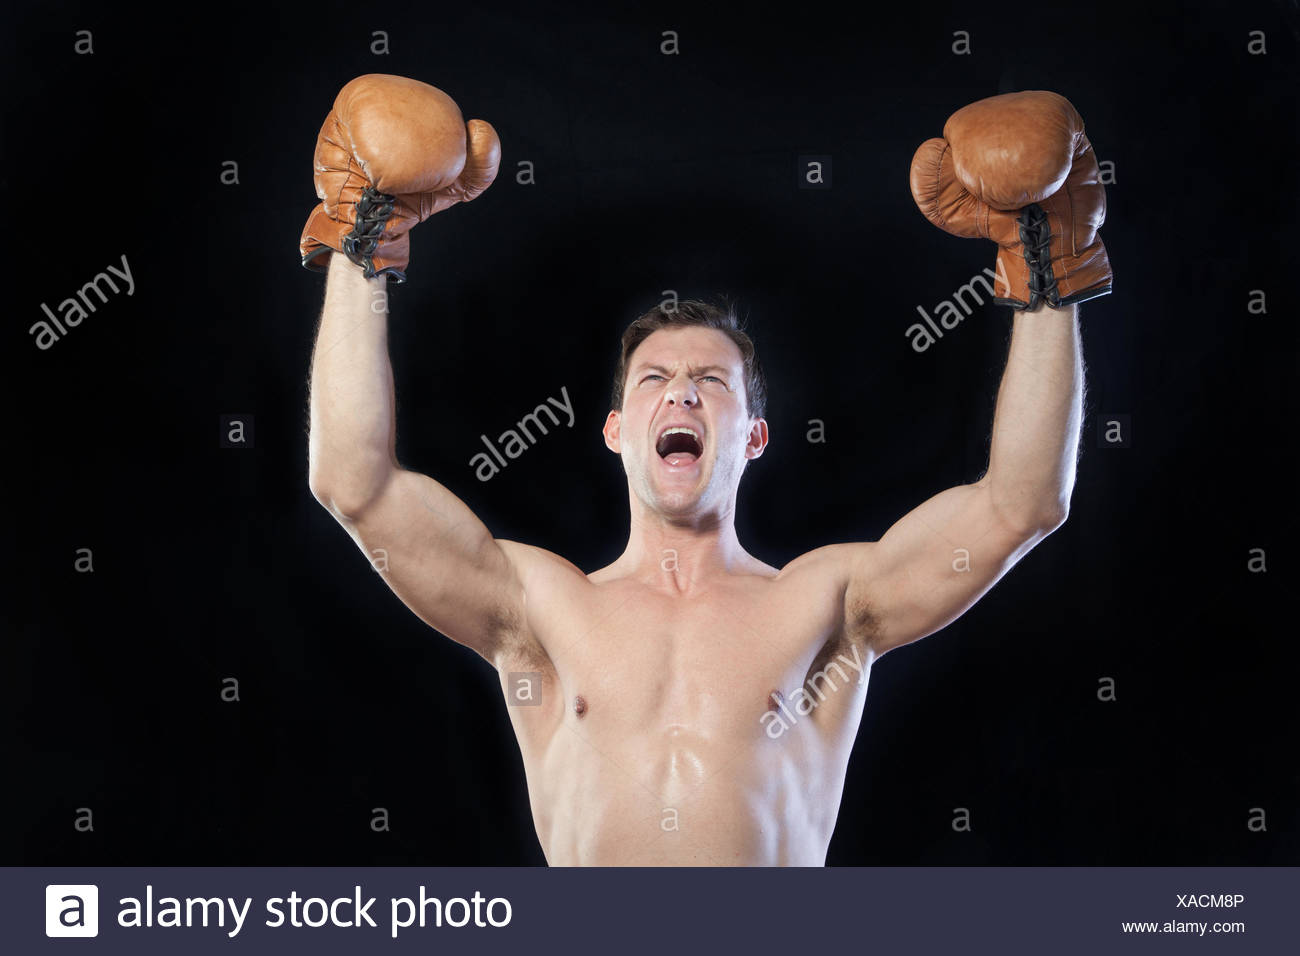 Boxer cheering with hands raised in air - Stock Image